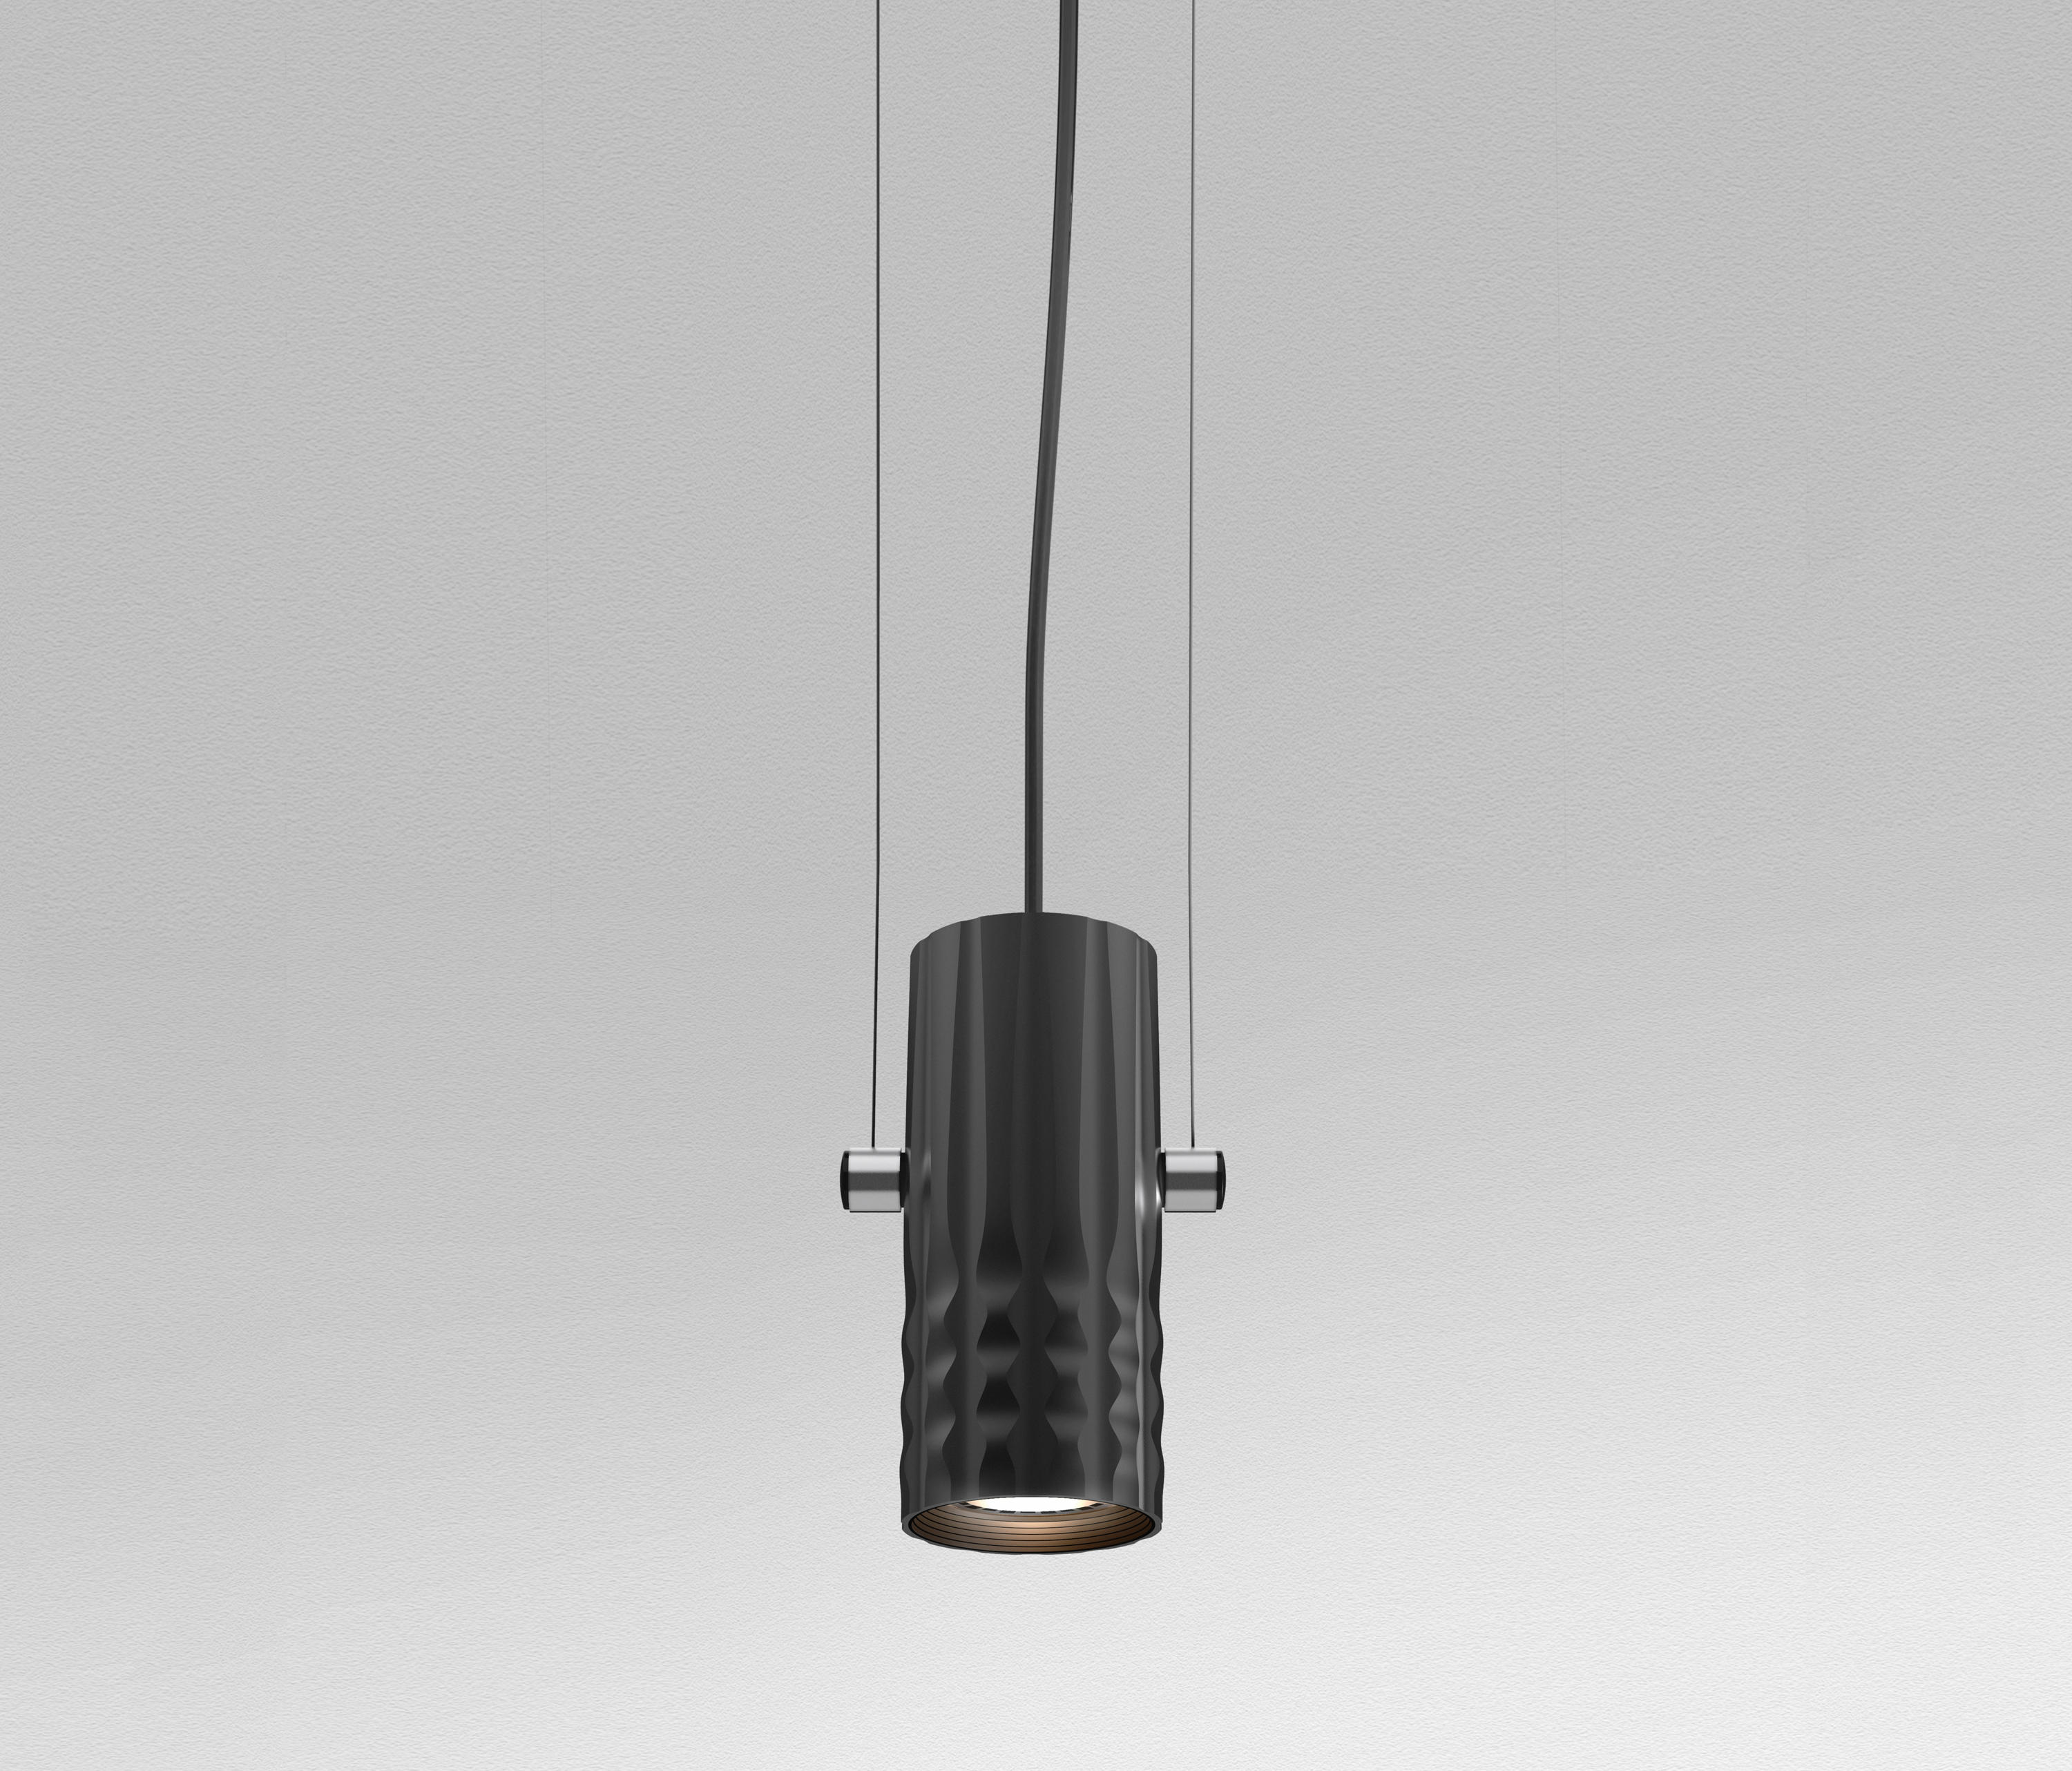 Emejing Artemide Luminaire Suspension Contemporary Joshkrajcik Us